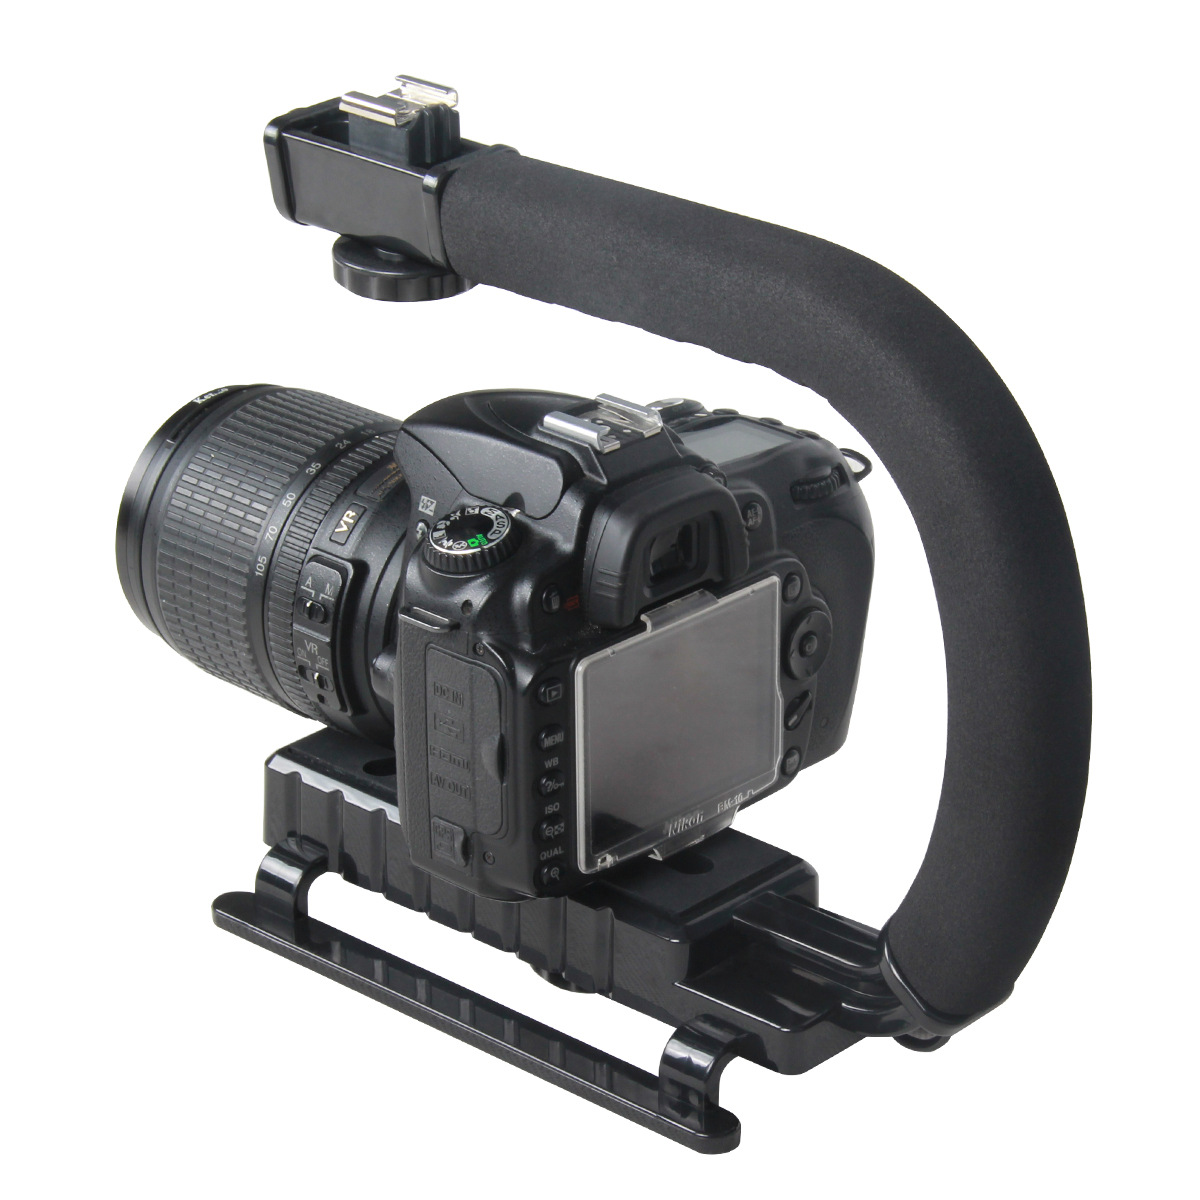 C Shaped Holder Grip Video Handheld Gimbal Stabilizer For DSLR Nikon Canon Sony Camera And Light Portable Steadicam For Gopro